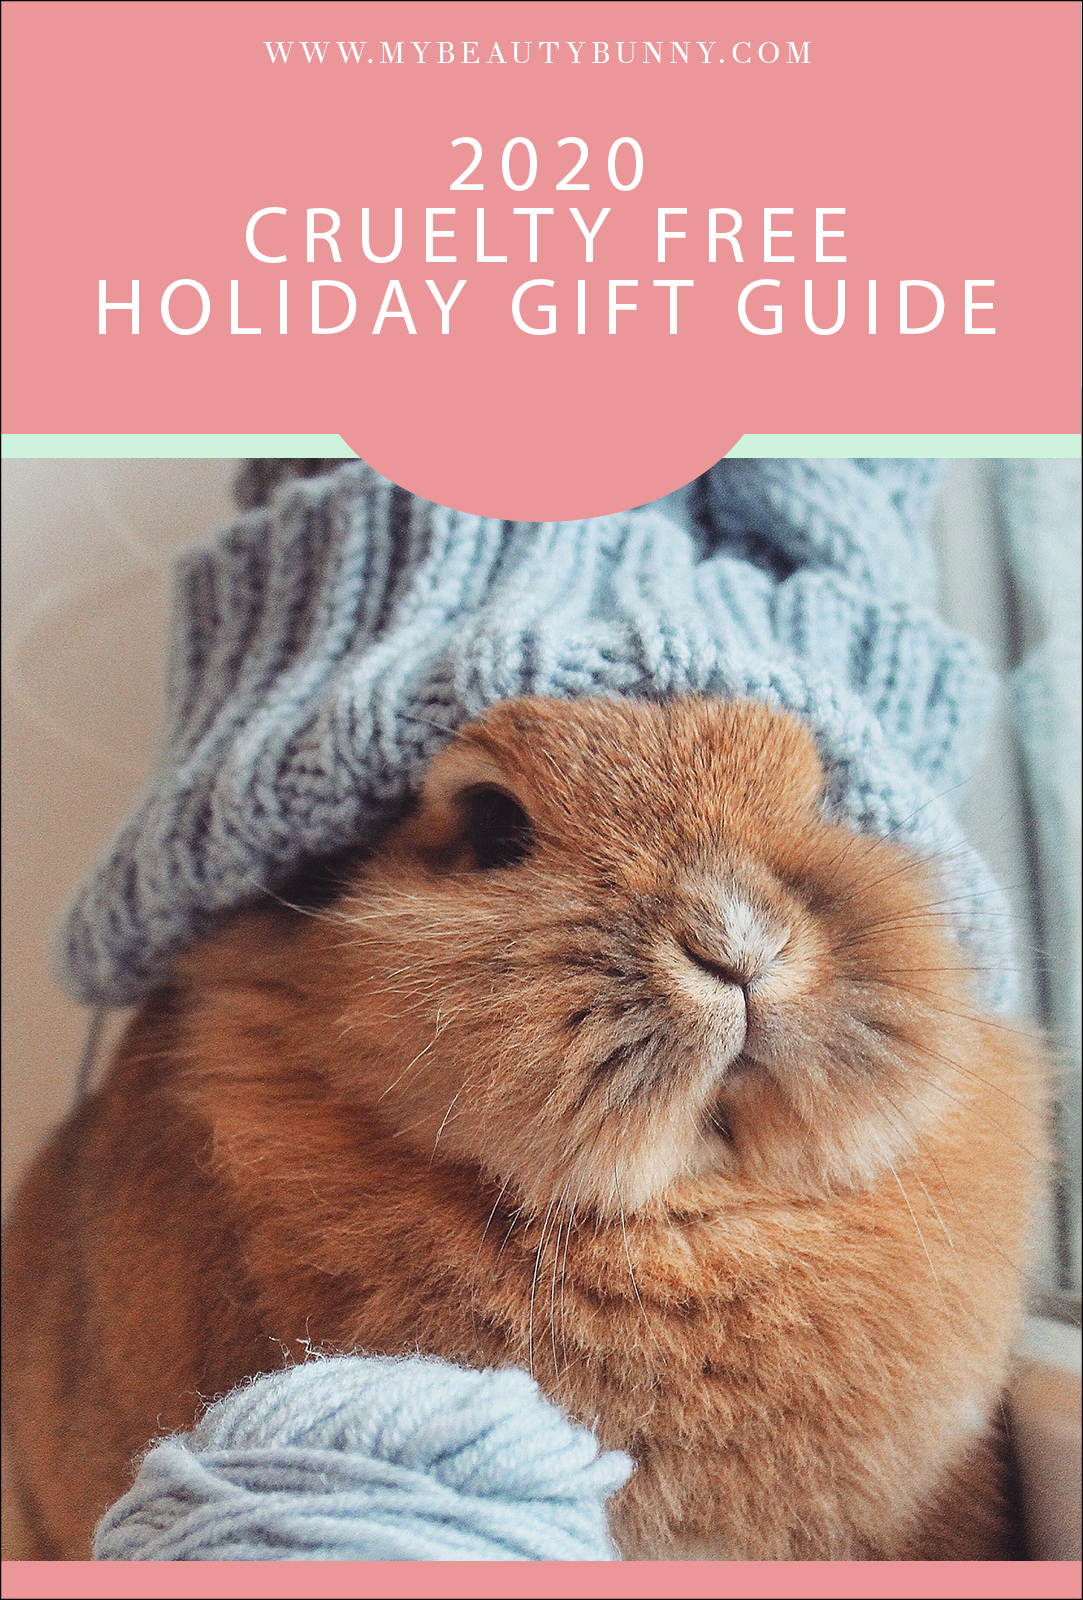 Cruelty Free Holiday Gift Guide 2020